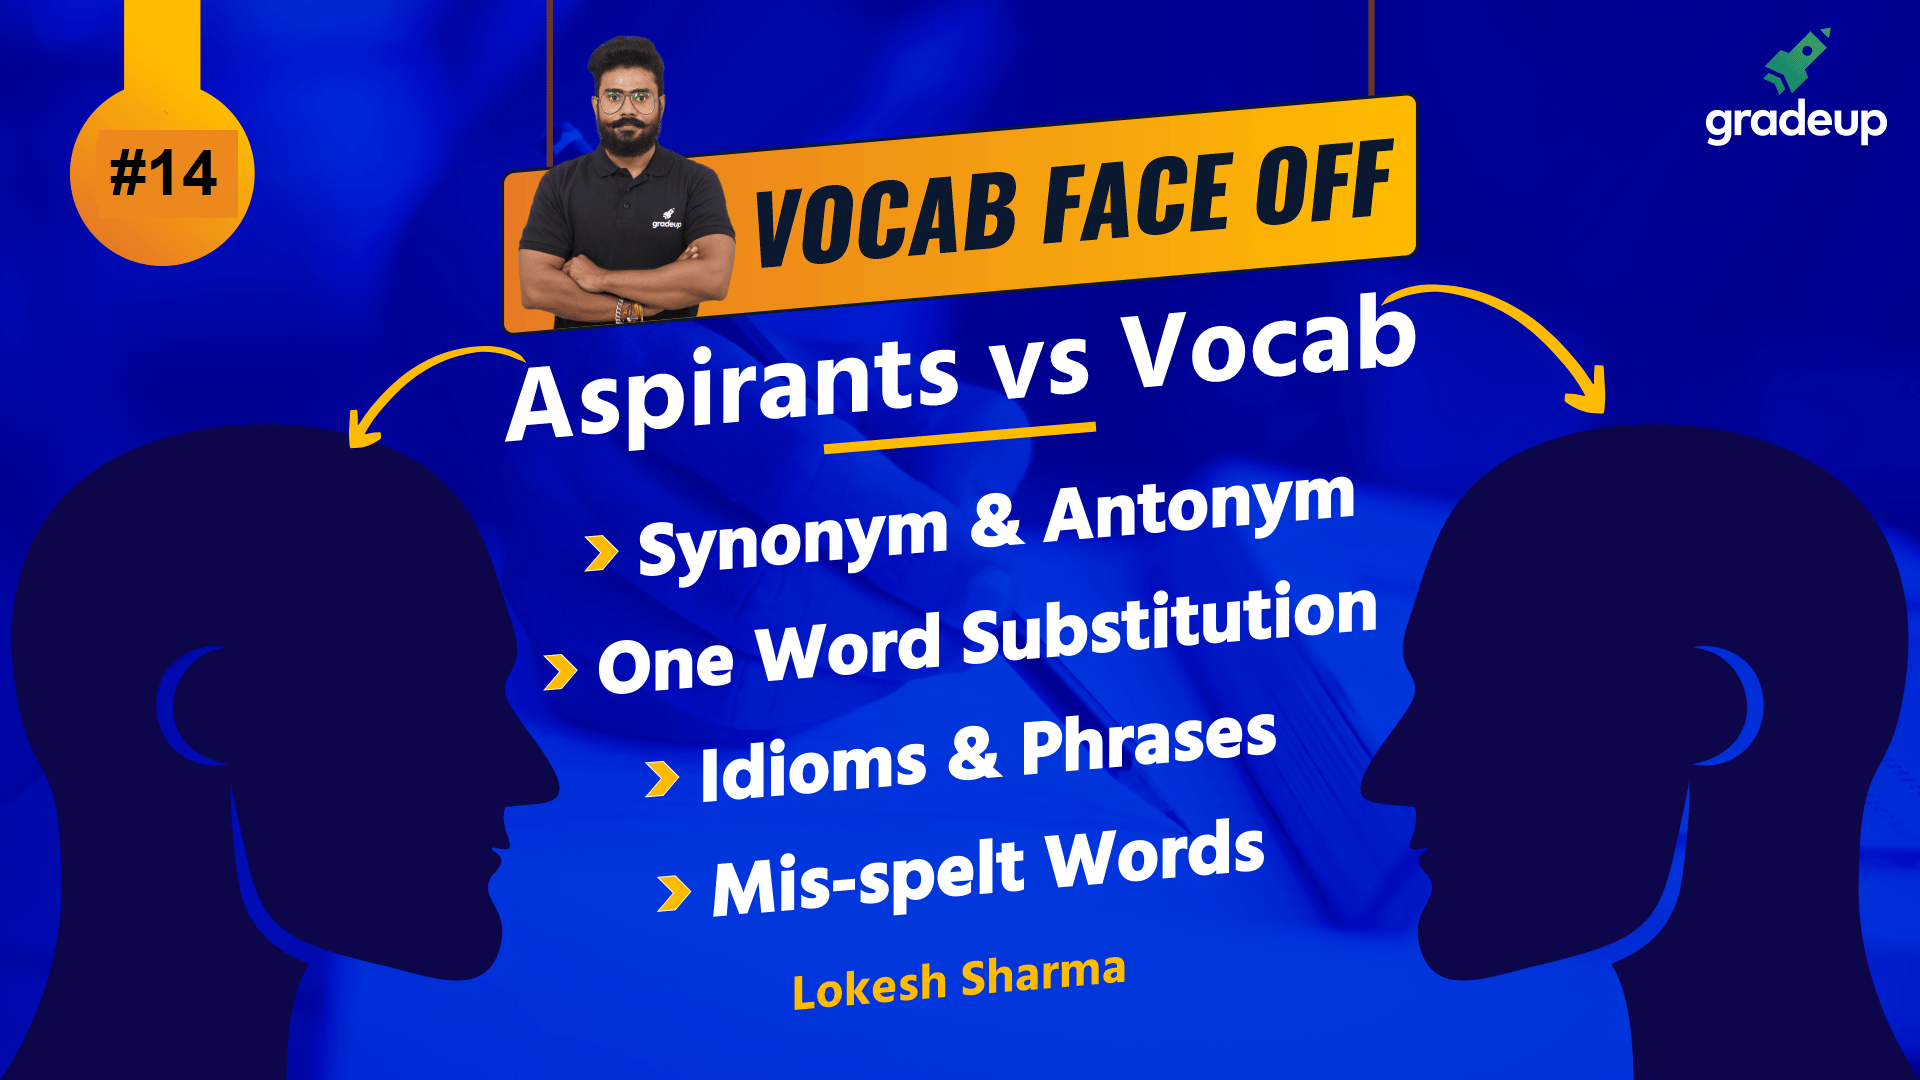 Vocab Faceoff - Aspirants Vs Vocab: Class 14 | Lokesh Sharma | Gradeup